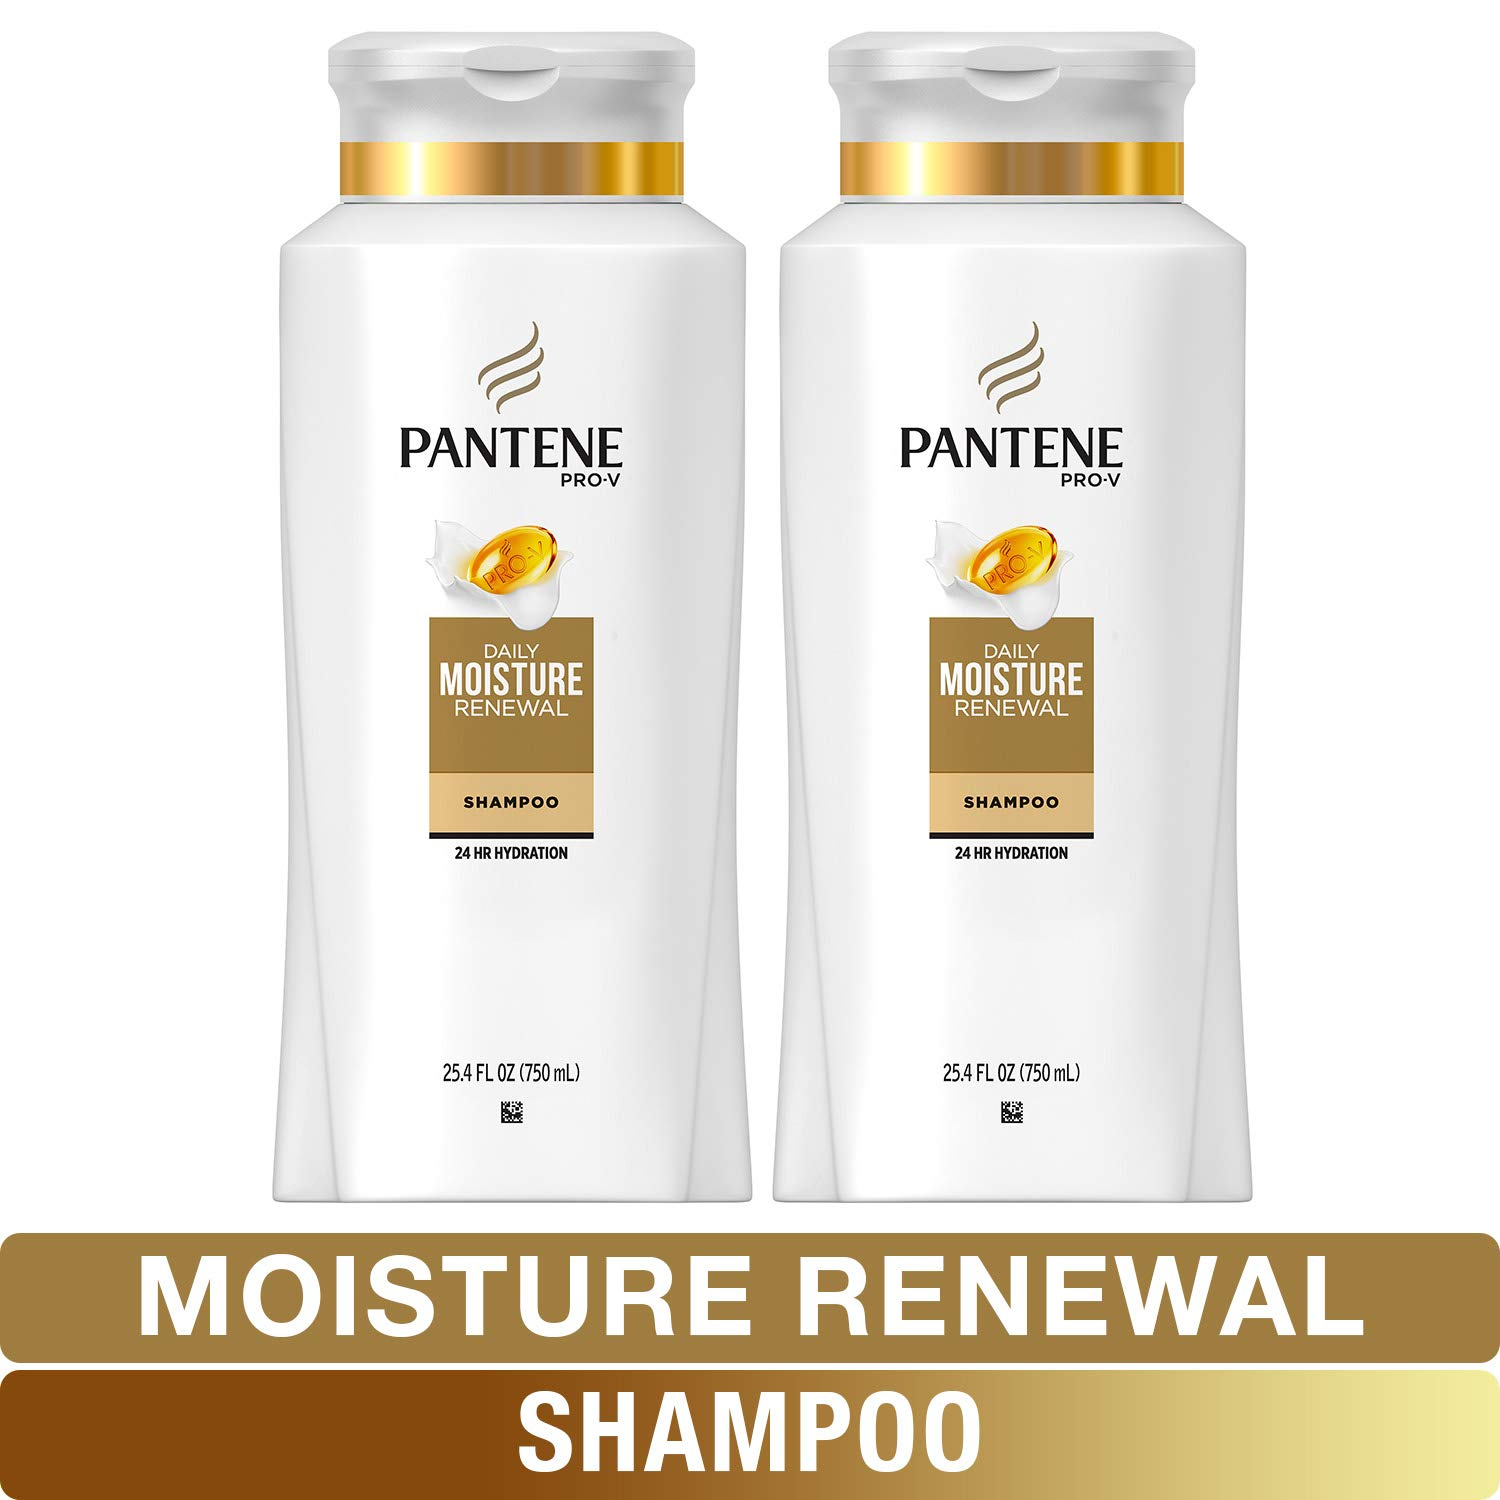 Pantene, Shampoo, Pro-V Daily Moisture Renewal for Dry Hair, 25.4 Fl Oz, Twin Pack by Pantene